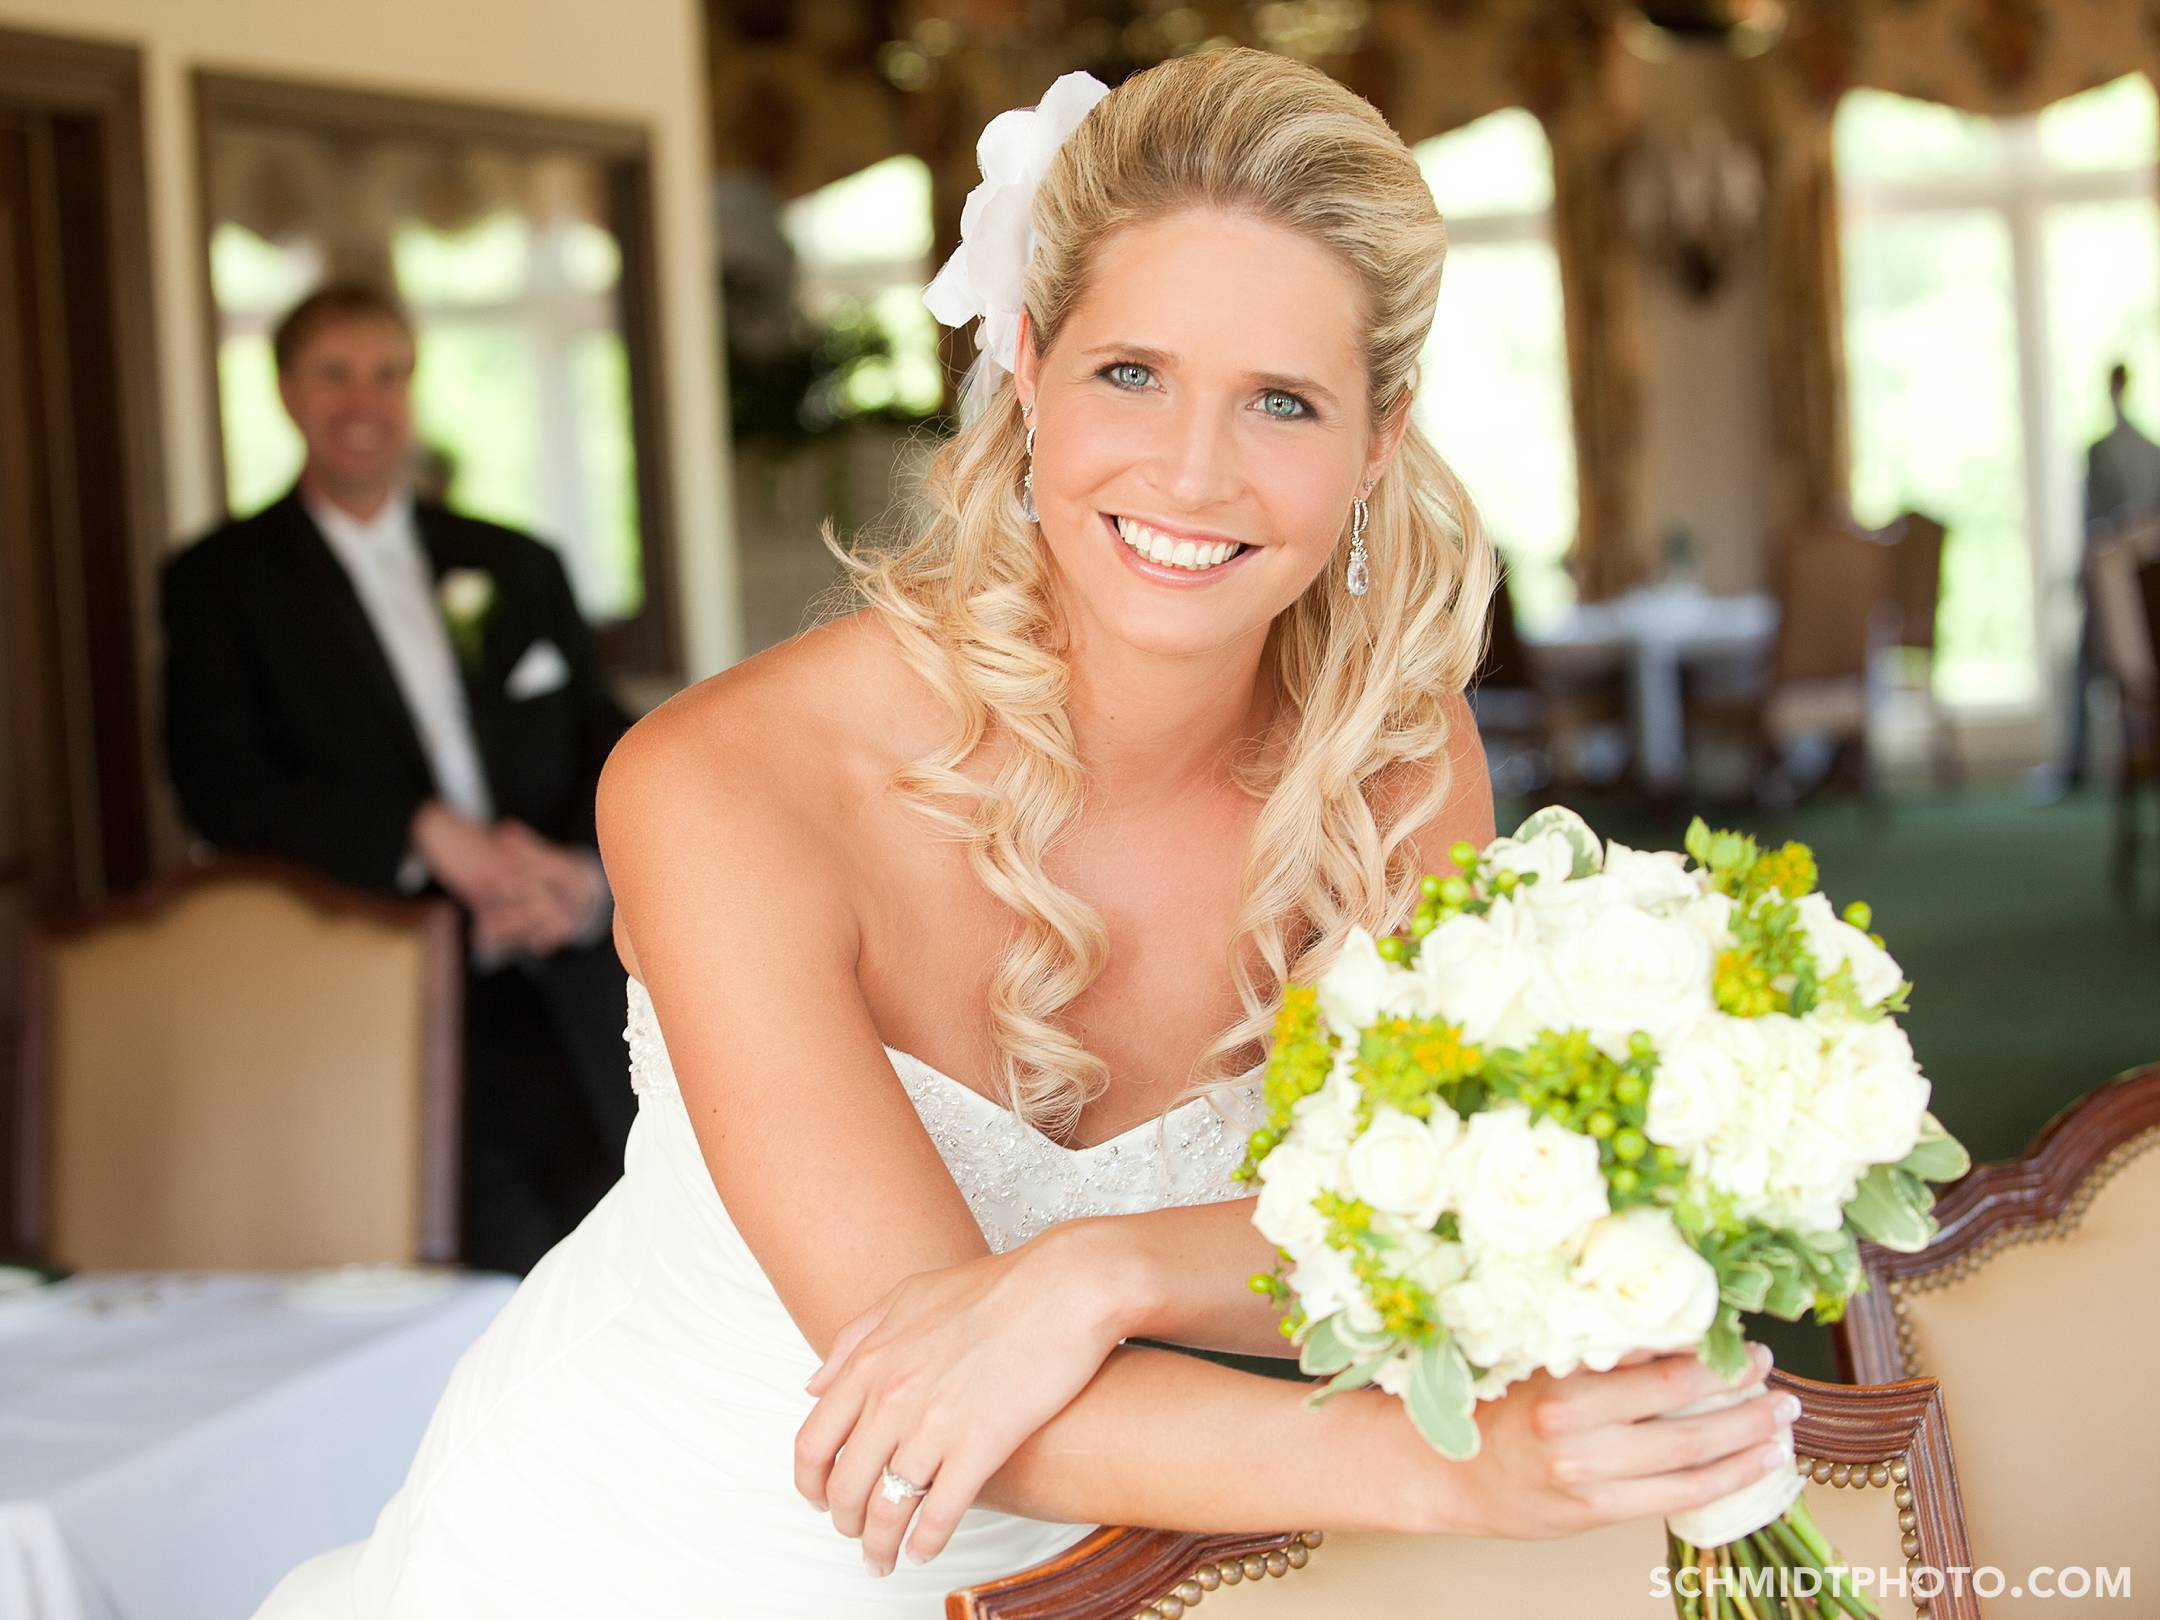 schmidt photo wedding photography in chicago brides fine art